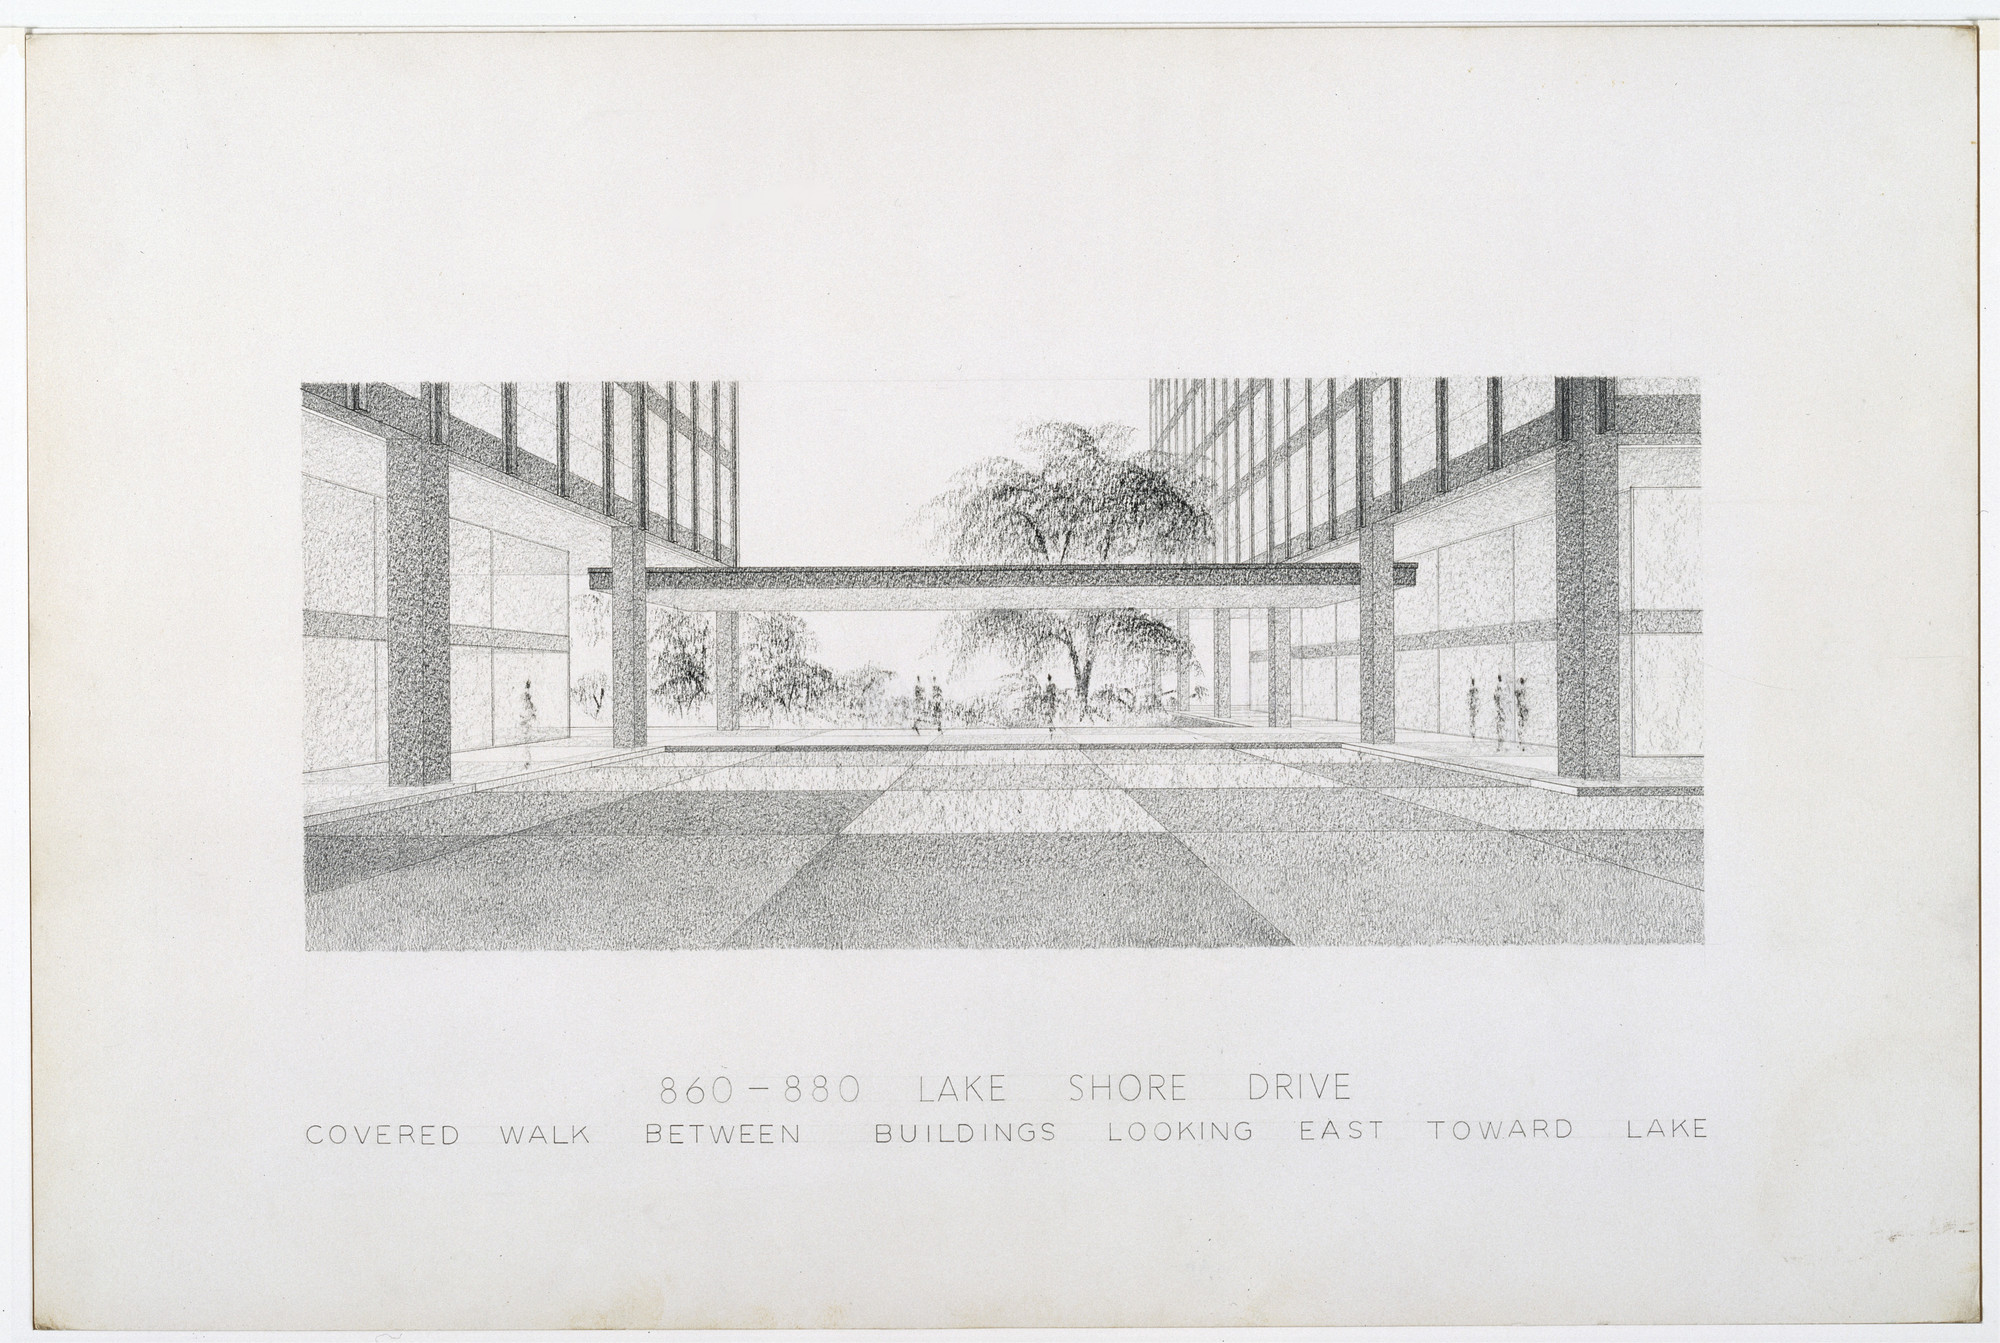 Ludwig Mies van der Rohe. 860/880 Lake Shore Drive Apartment Building, Chicago, Illinois (Exterior perspective). c. 1948-51